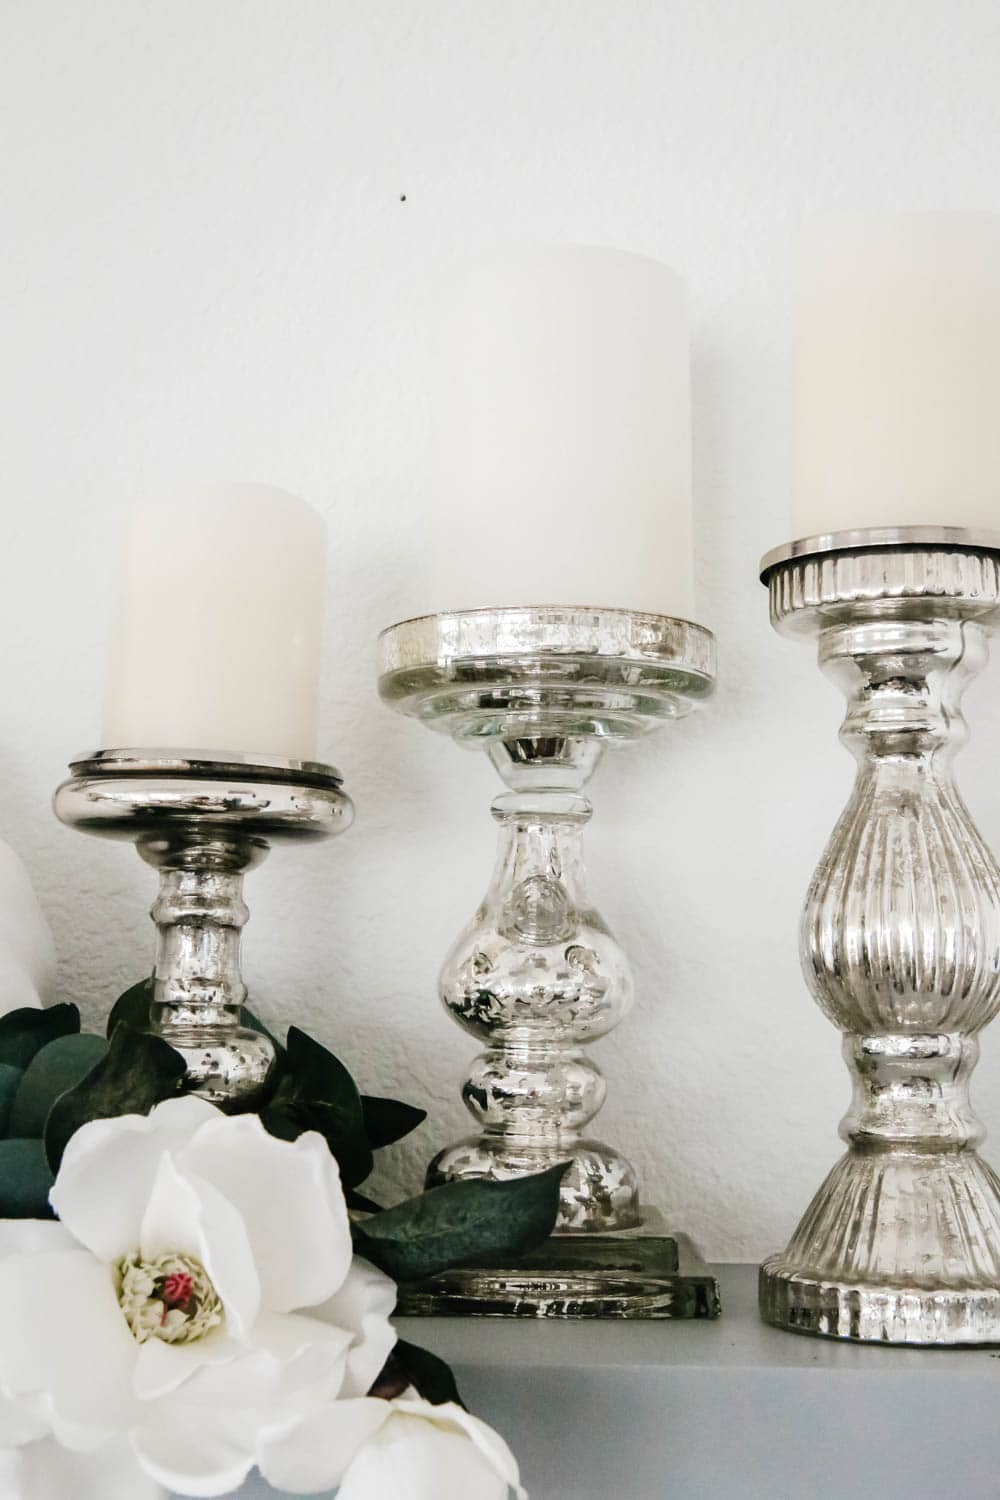 Cluster mercury glass candle holders for a cozy fall vibe. #ABlissfulNest #falldecorideas